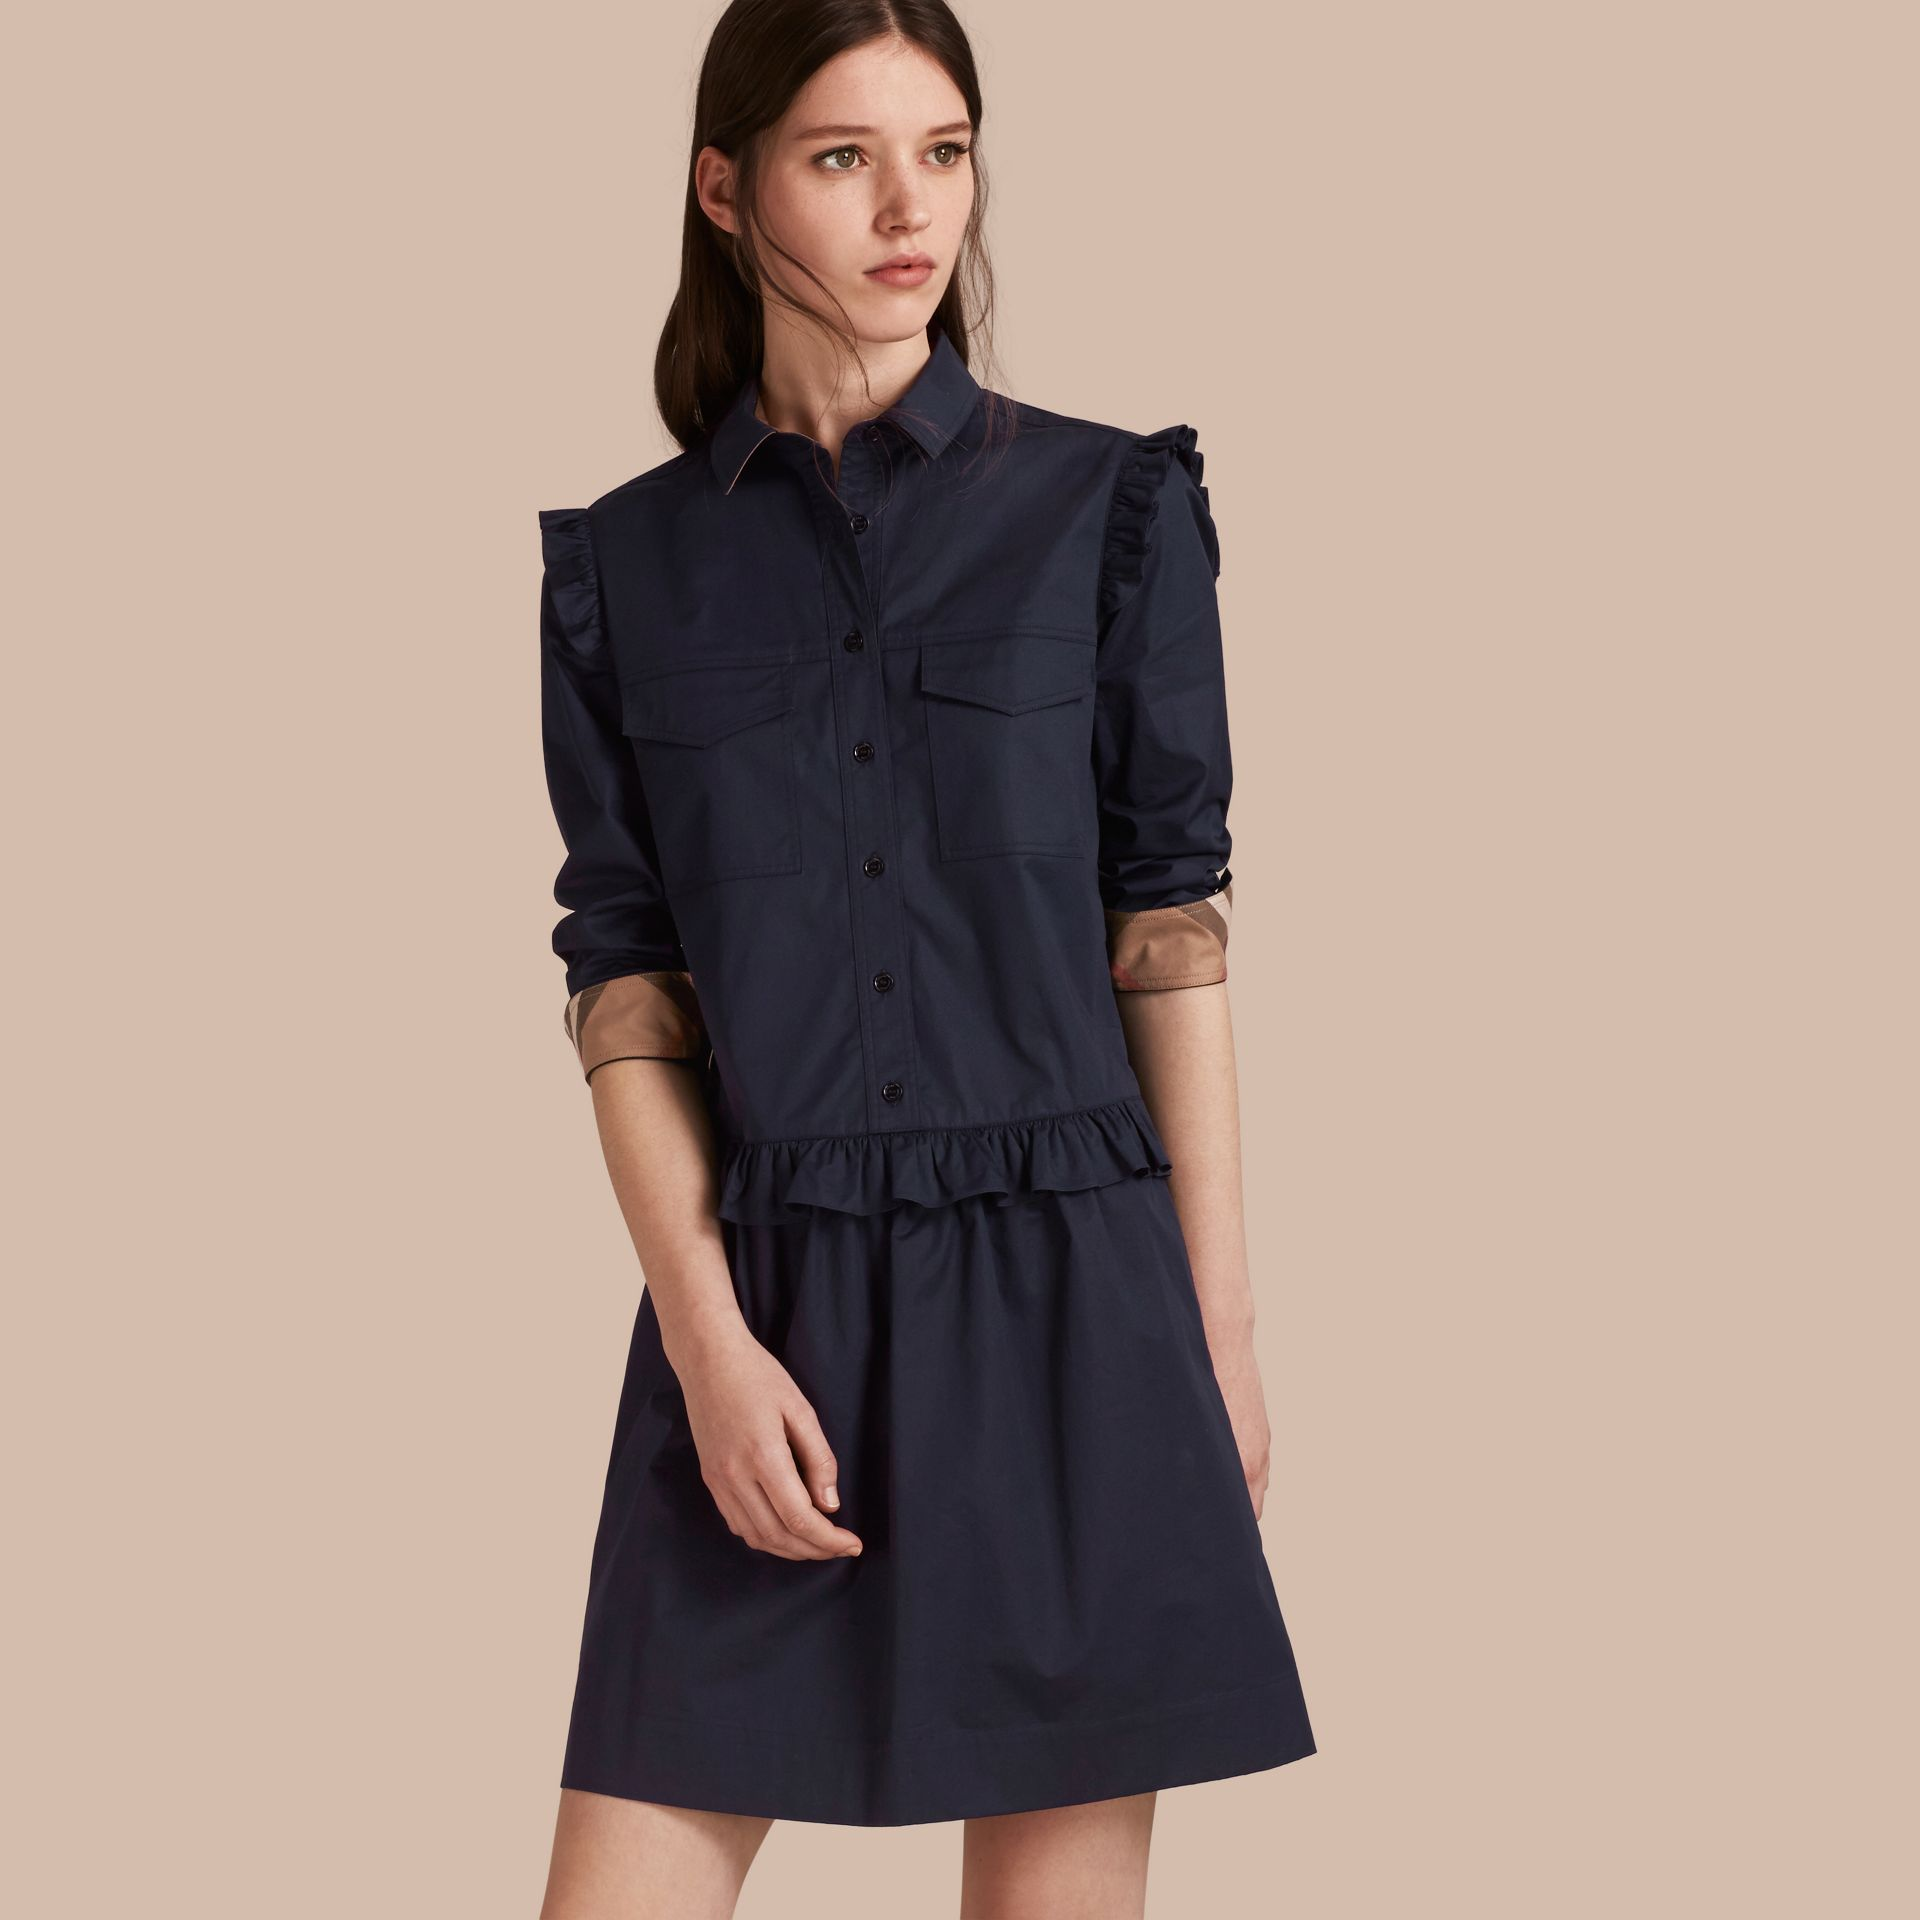 Ruffle and Check Detail Cotton Shirt Dress Navy - gallery image 1